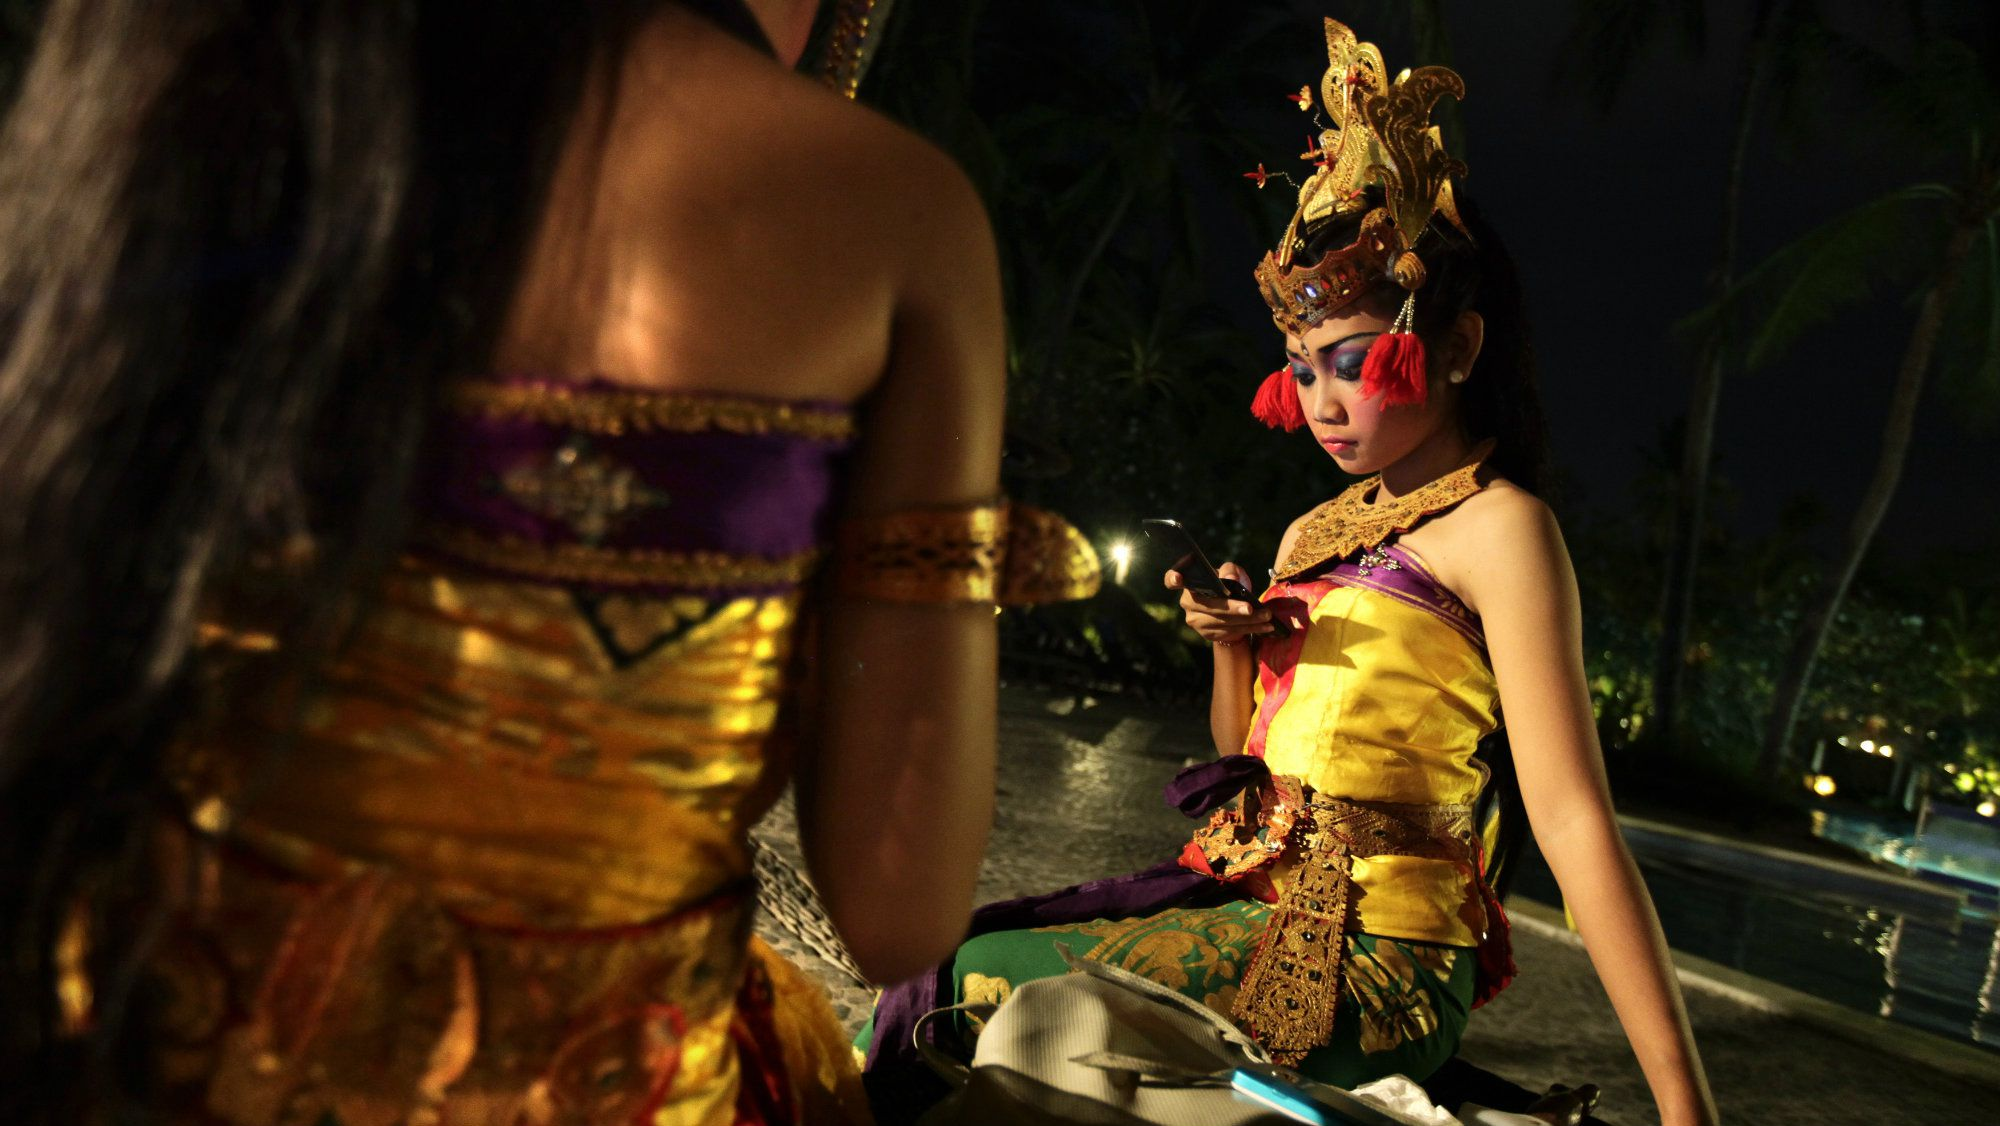 Indonesian traditional dancers using mobile phones